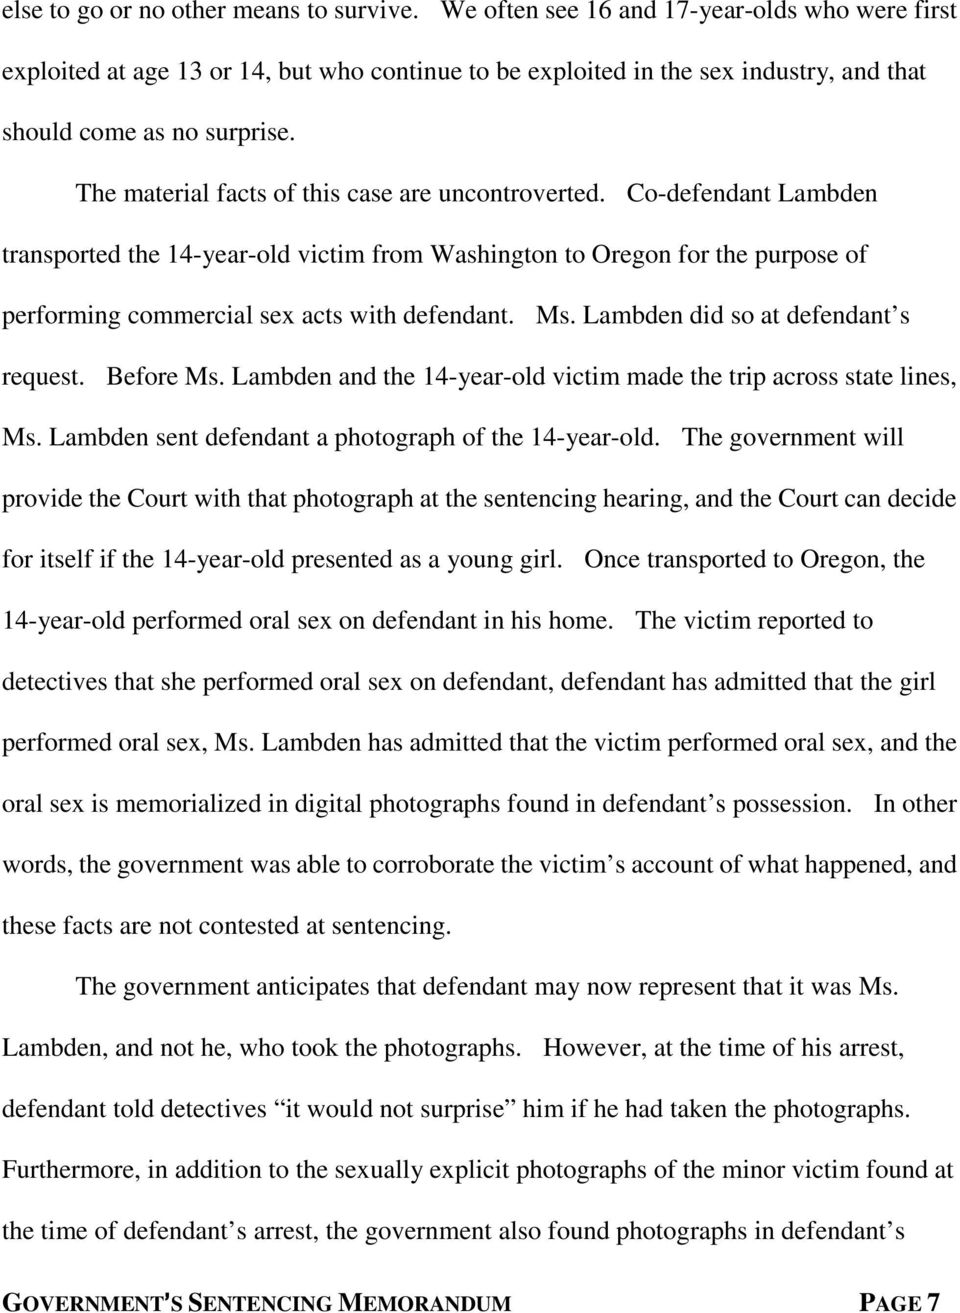 The material facts of this case are uncontroverted. Co-defendant Lambden transported the 14-year-old victim from Washington to Oregon for the purpose of performing commercial sex acts with defendant.